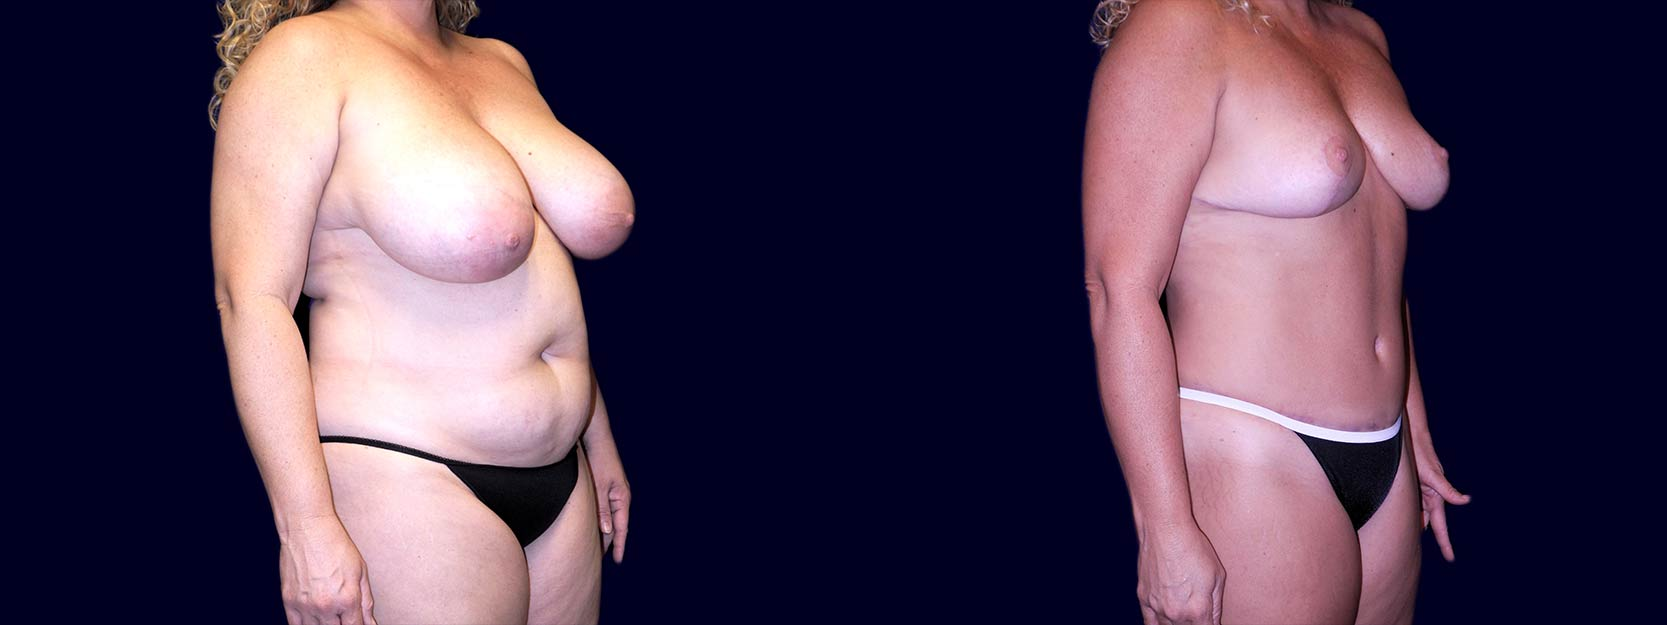 Right 3/4 View - Breast Reduction and Tummy Tuck After Pregnancy